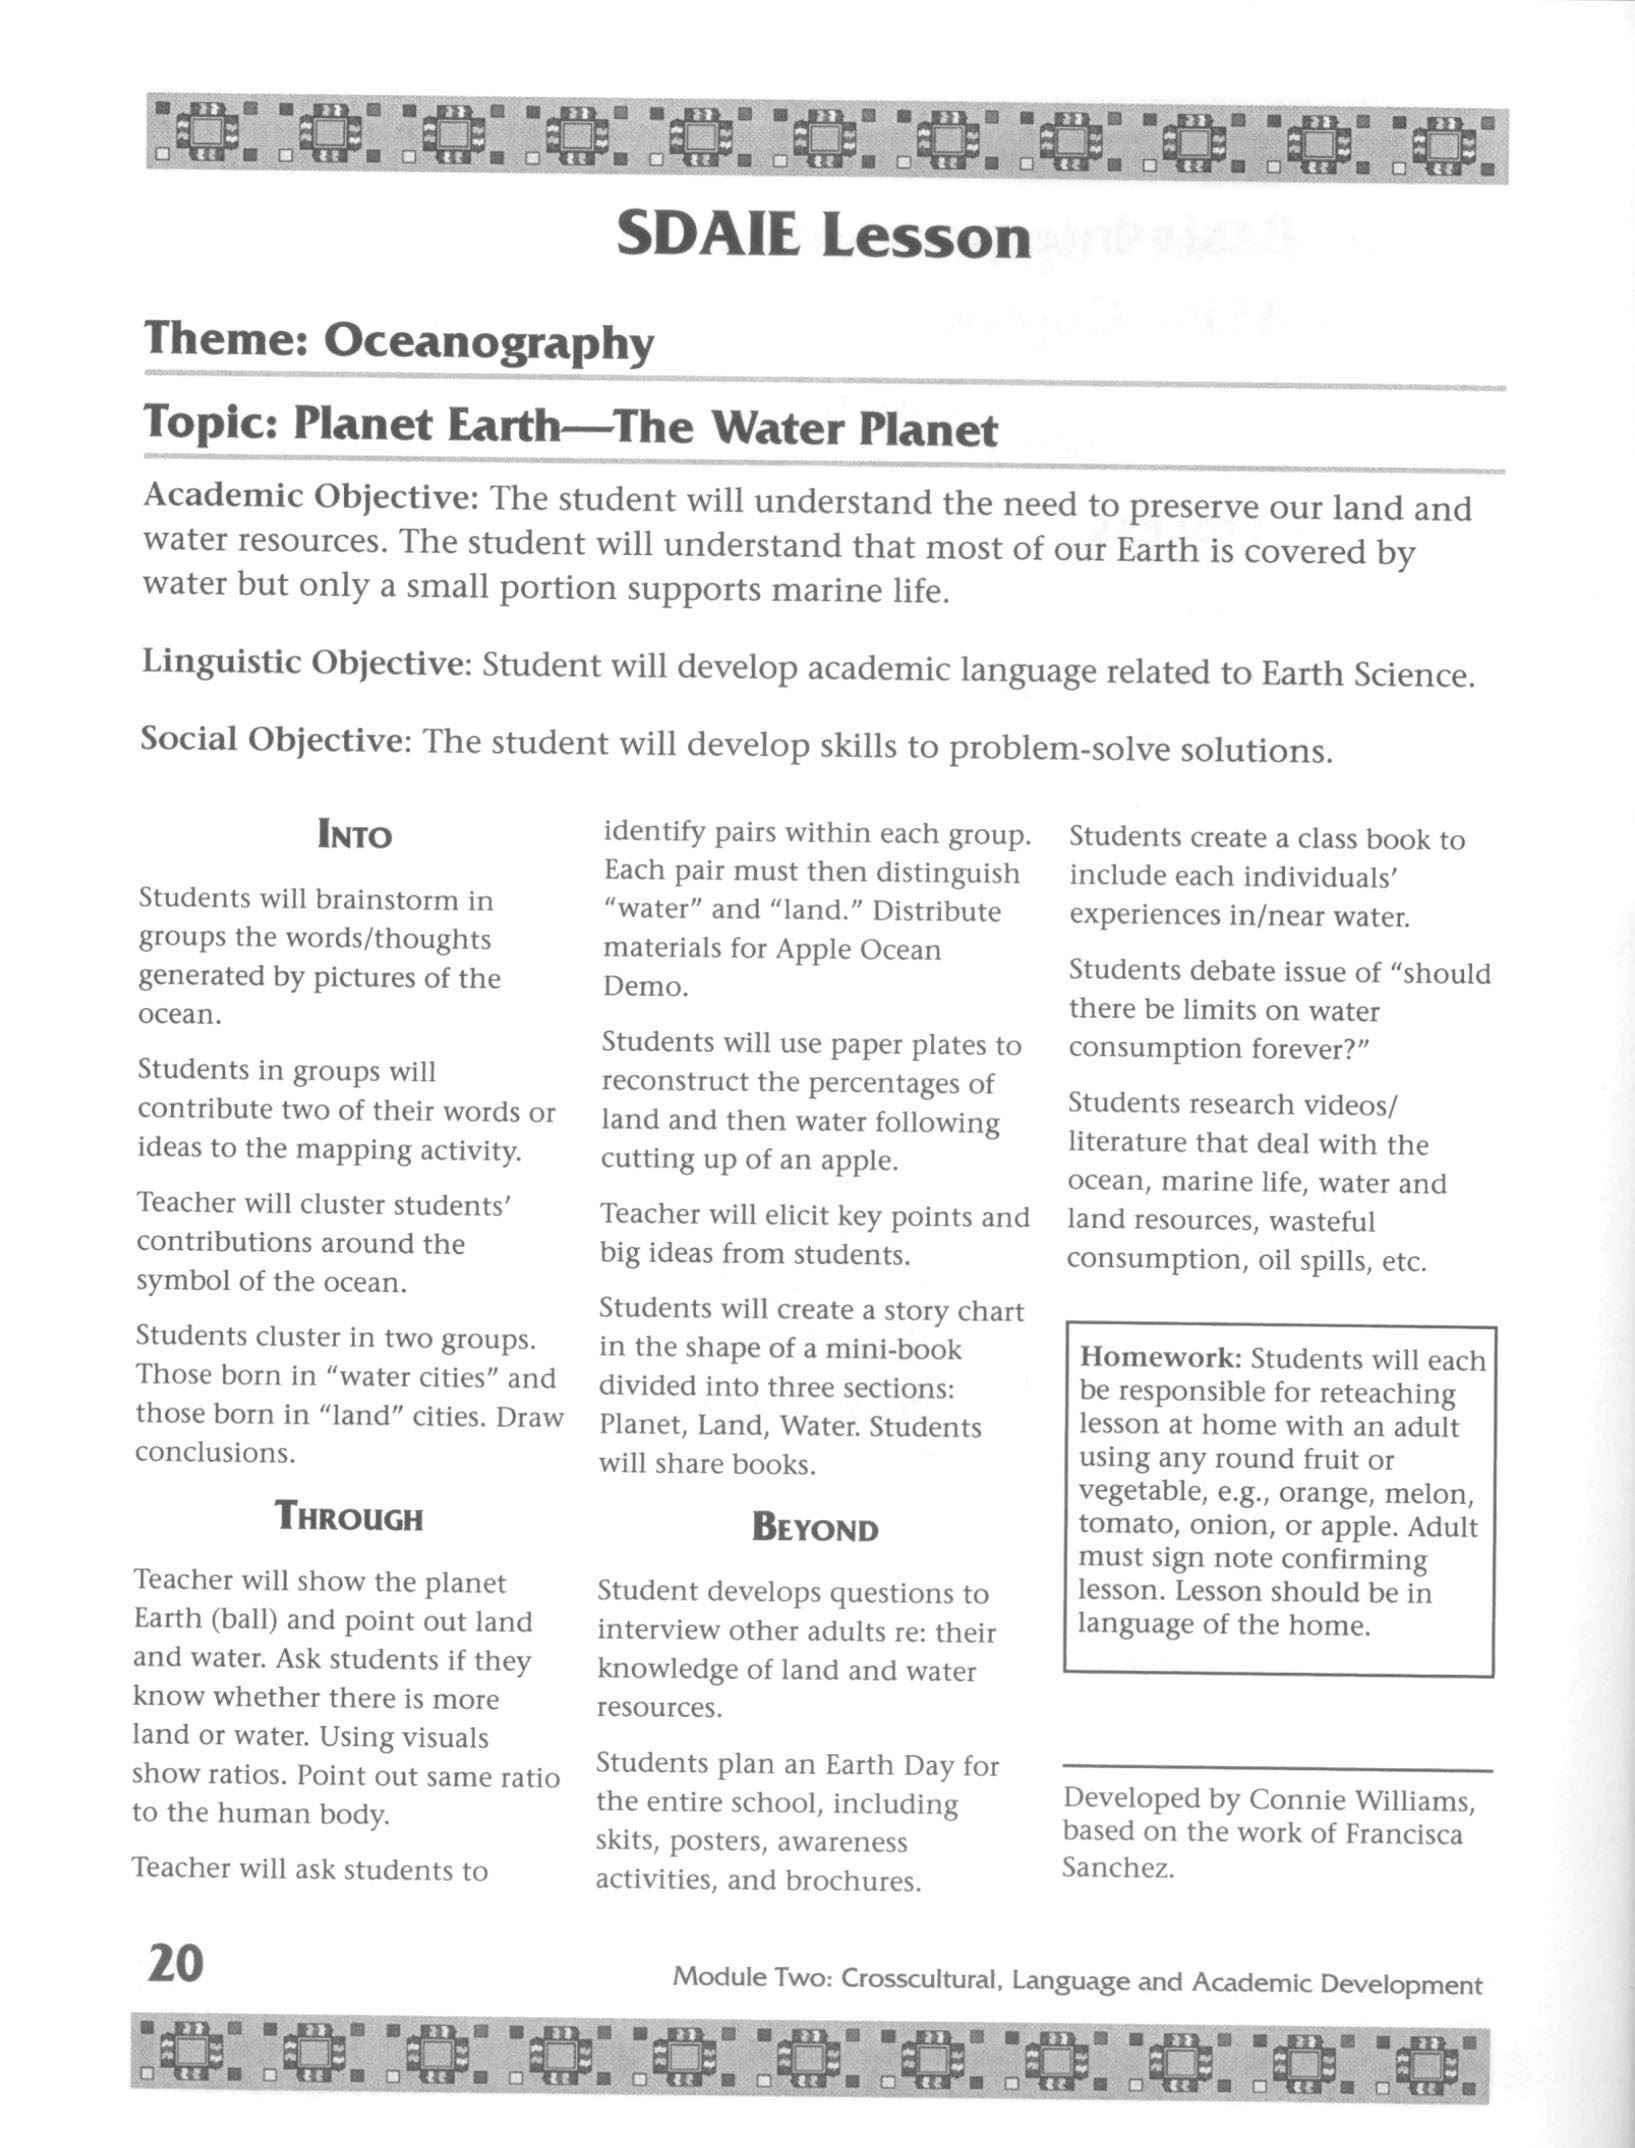 Disaster recovery plan essay